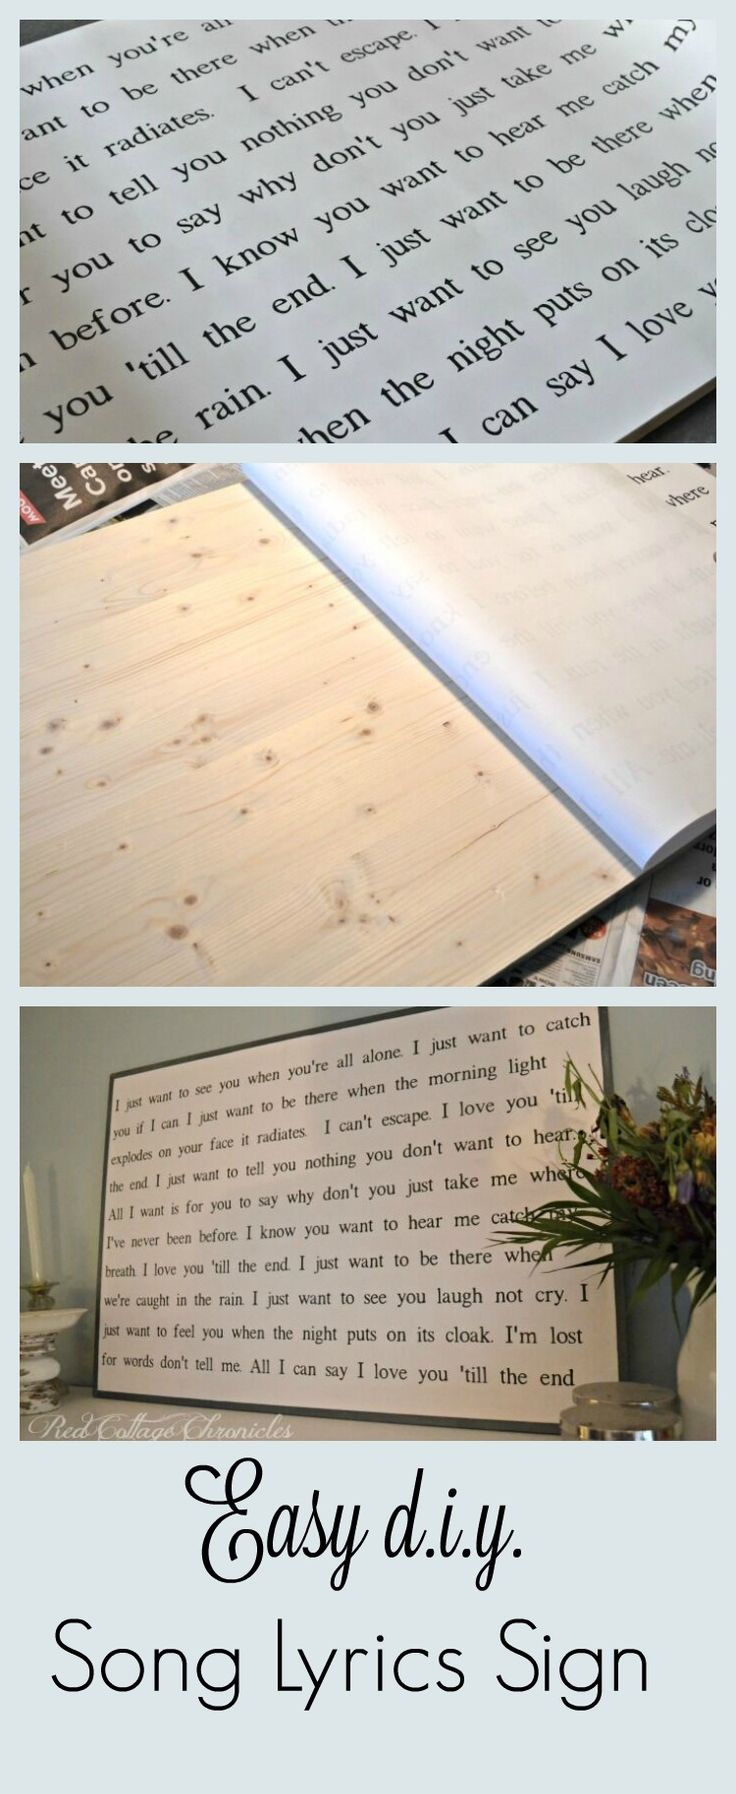 Decor s : Easy DIY Song Lyrics Sign No Sign Painting Skills ... on avalon homes, tennessee homes, luxury homes,